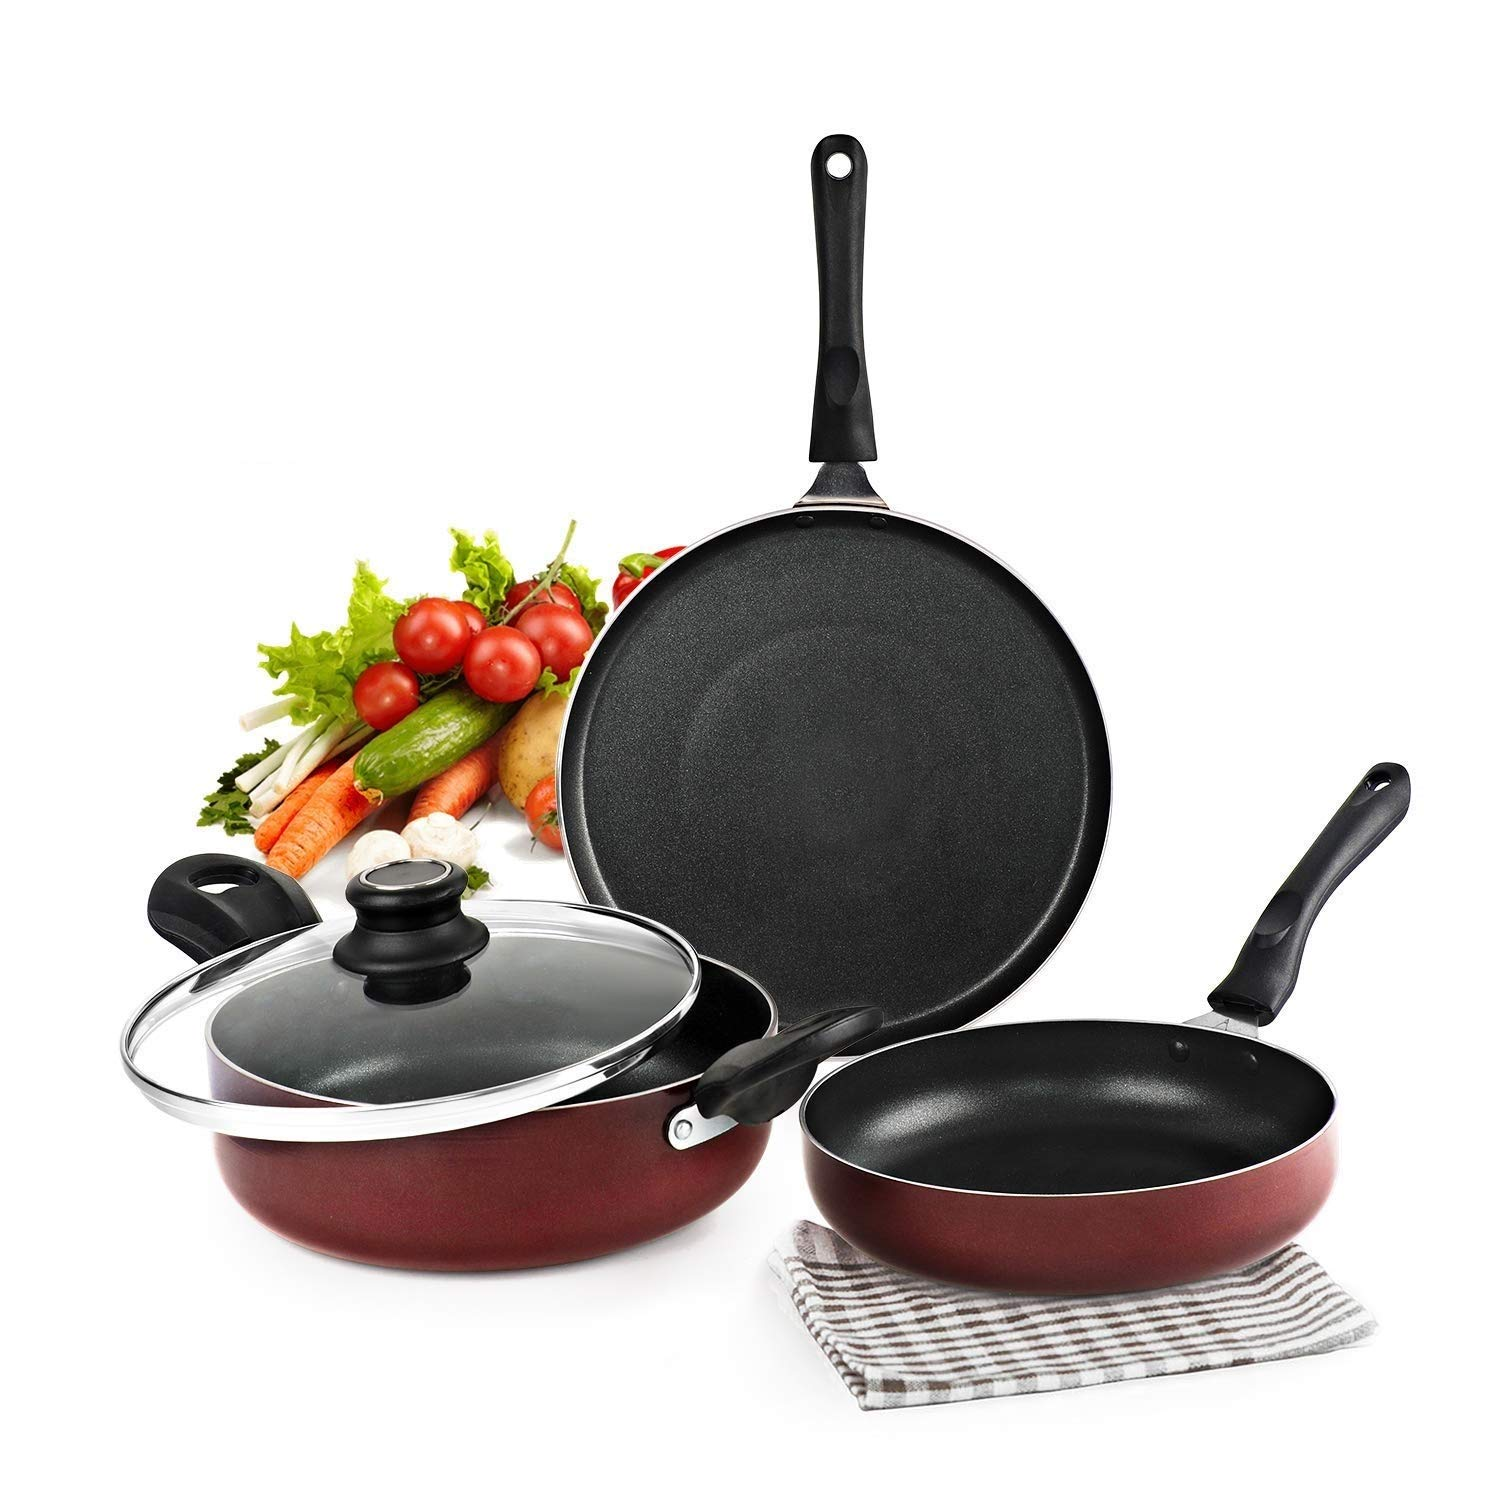 Cello Prima Induction Base Non-Stick Aluminium Cookware Set